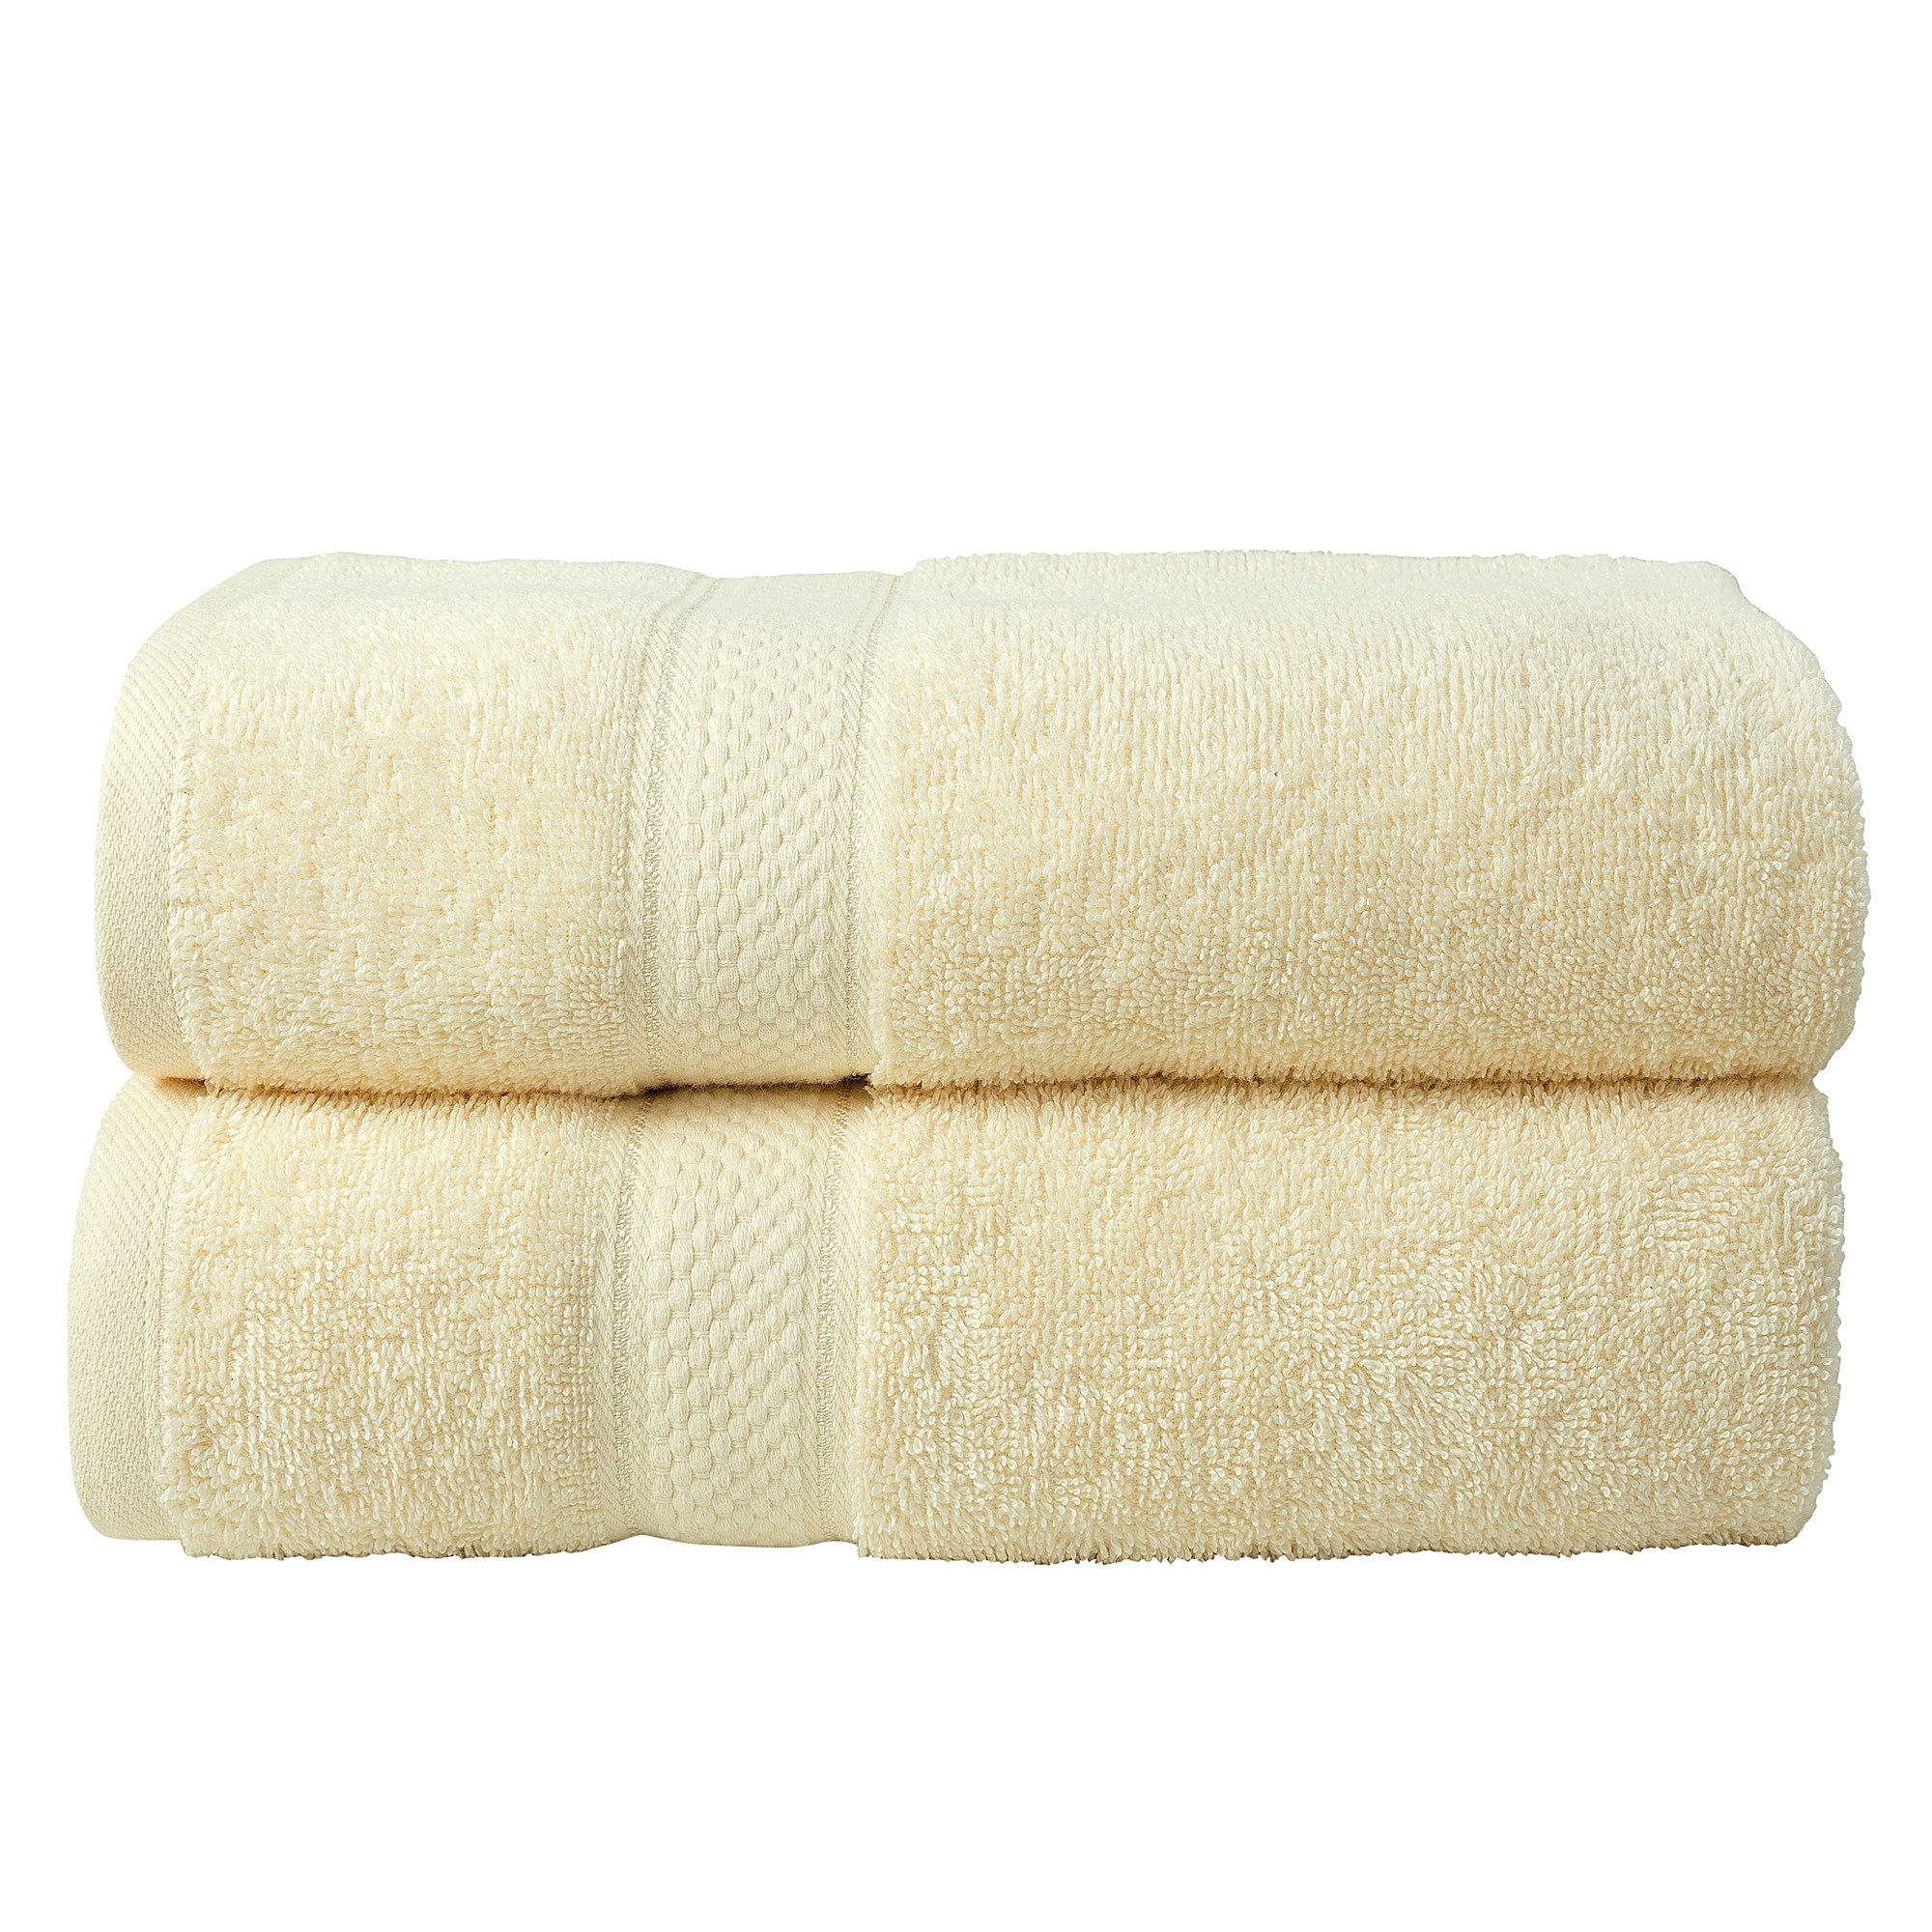 2 Pcs Bath Cotton Towel Bale Set Cream Plain